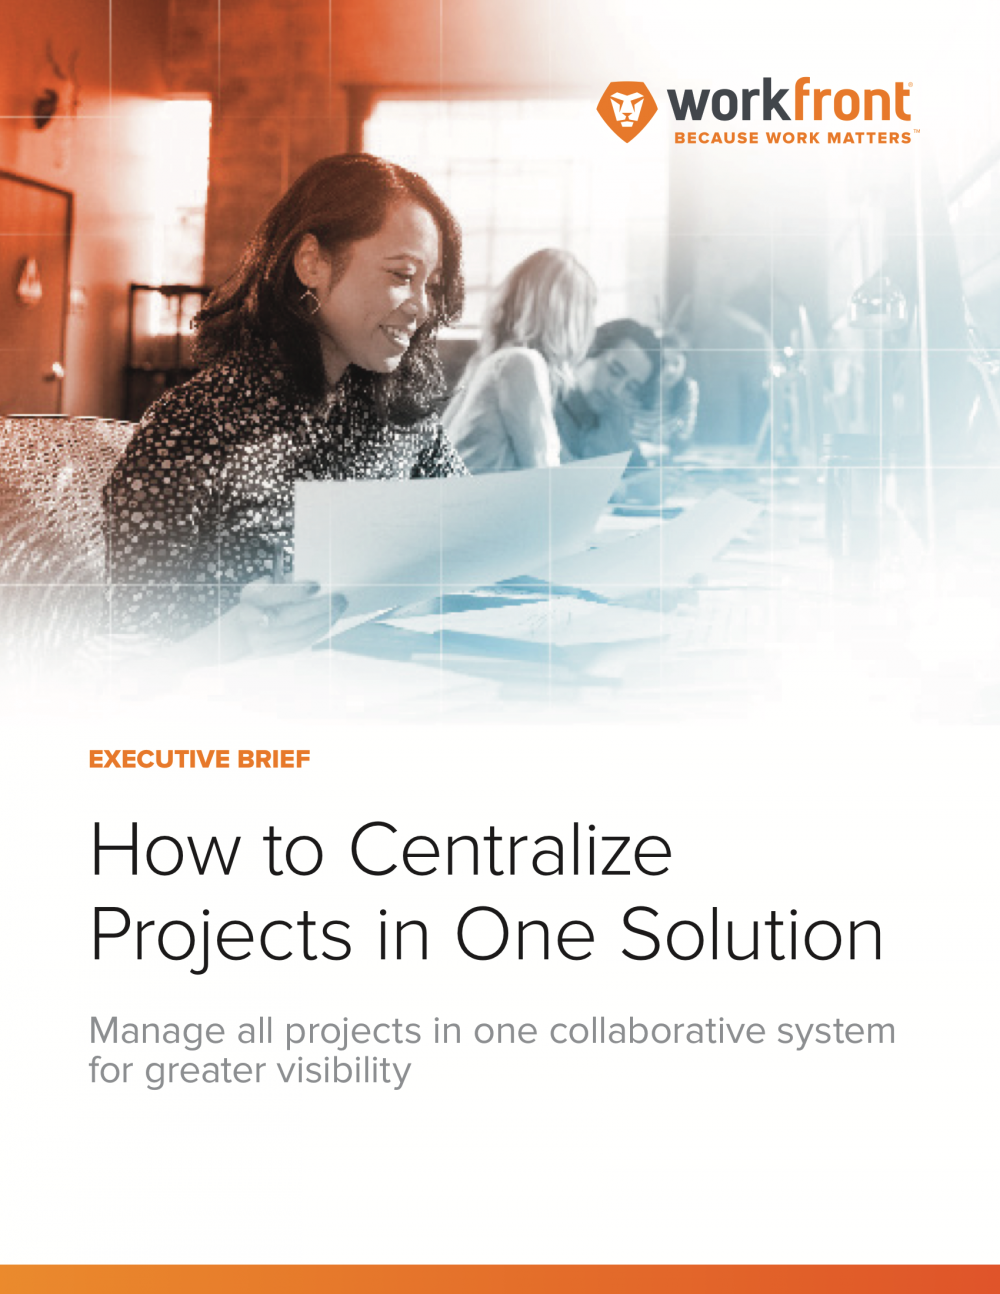 How to Centralize Projects in One Solution